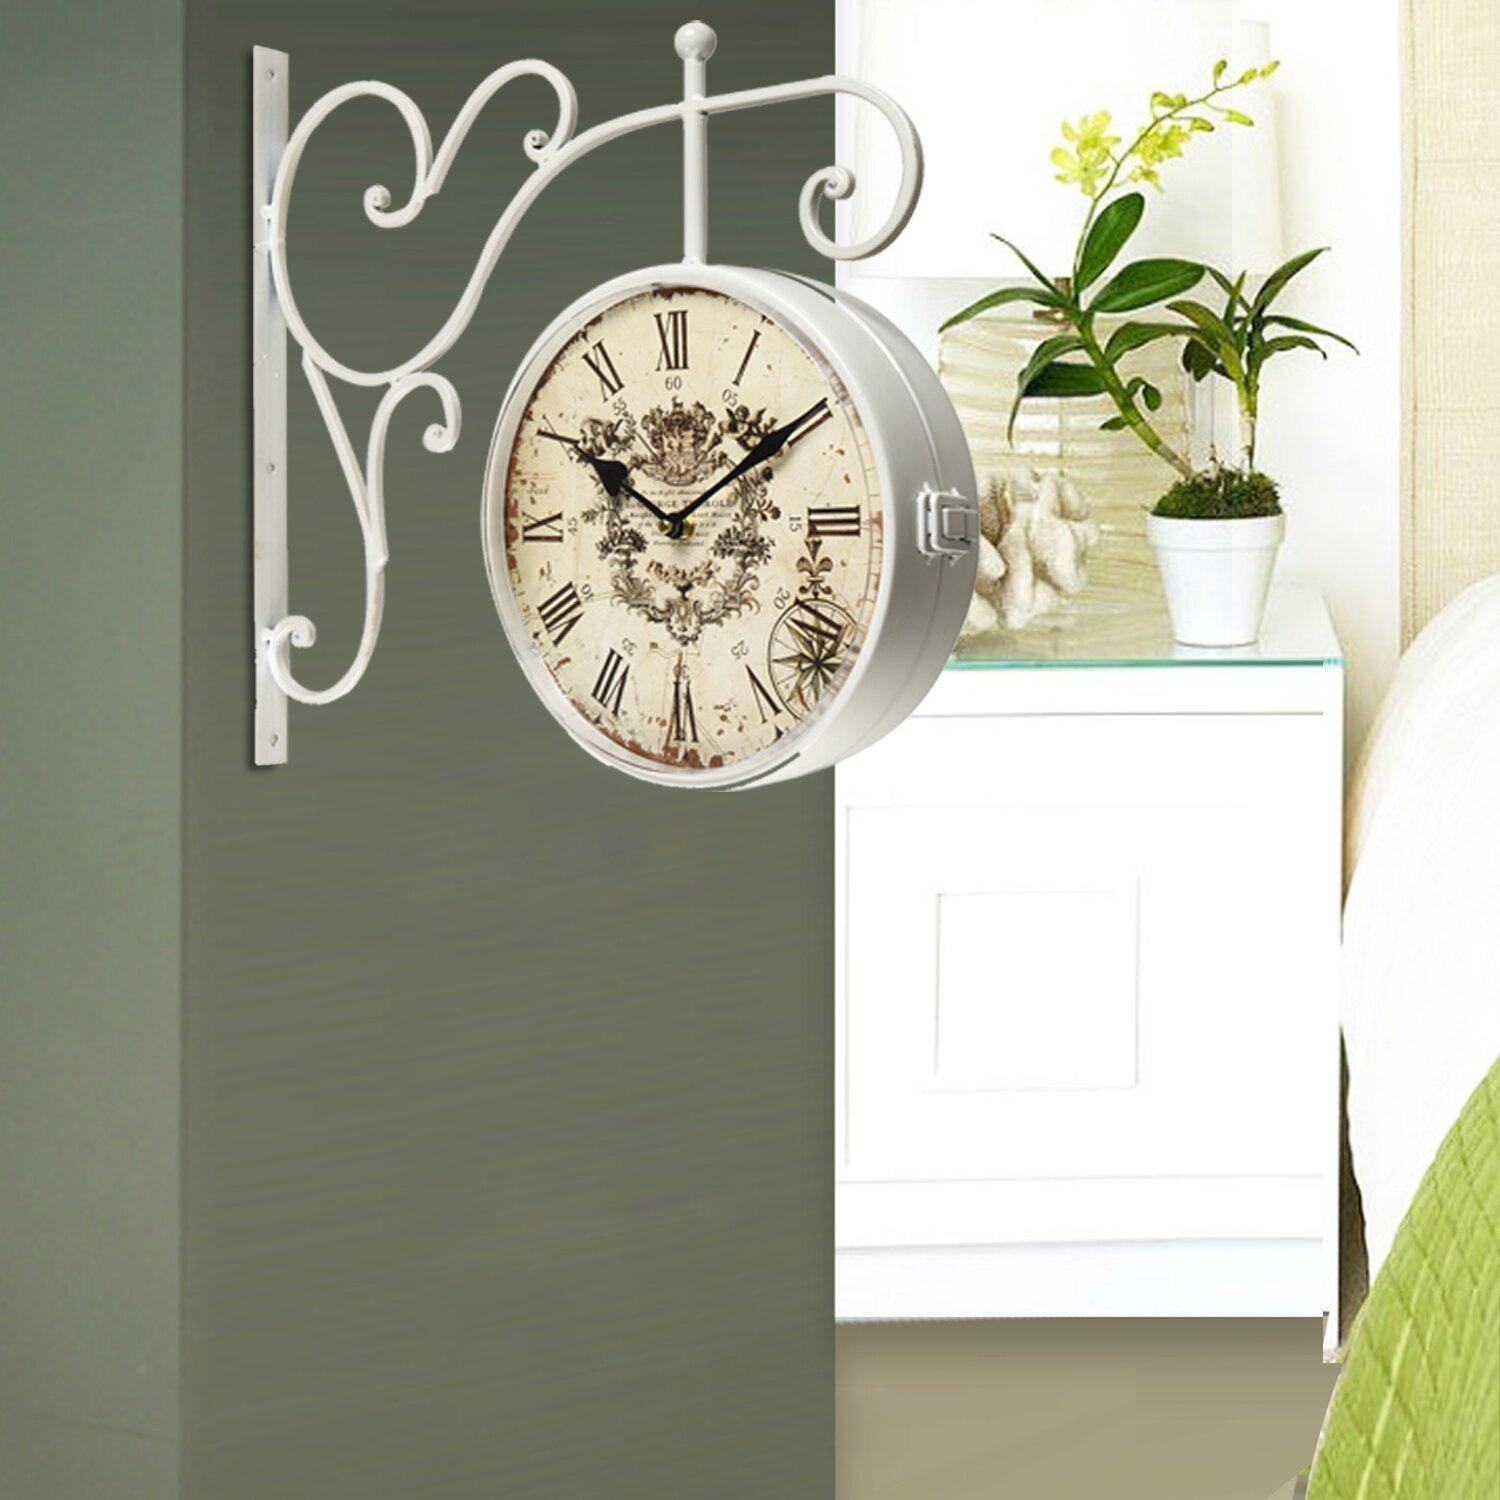 Adecotrading Vintage Inspired Round Double Sided Wall